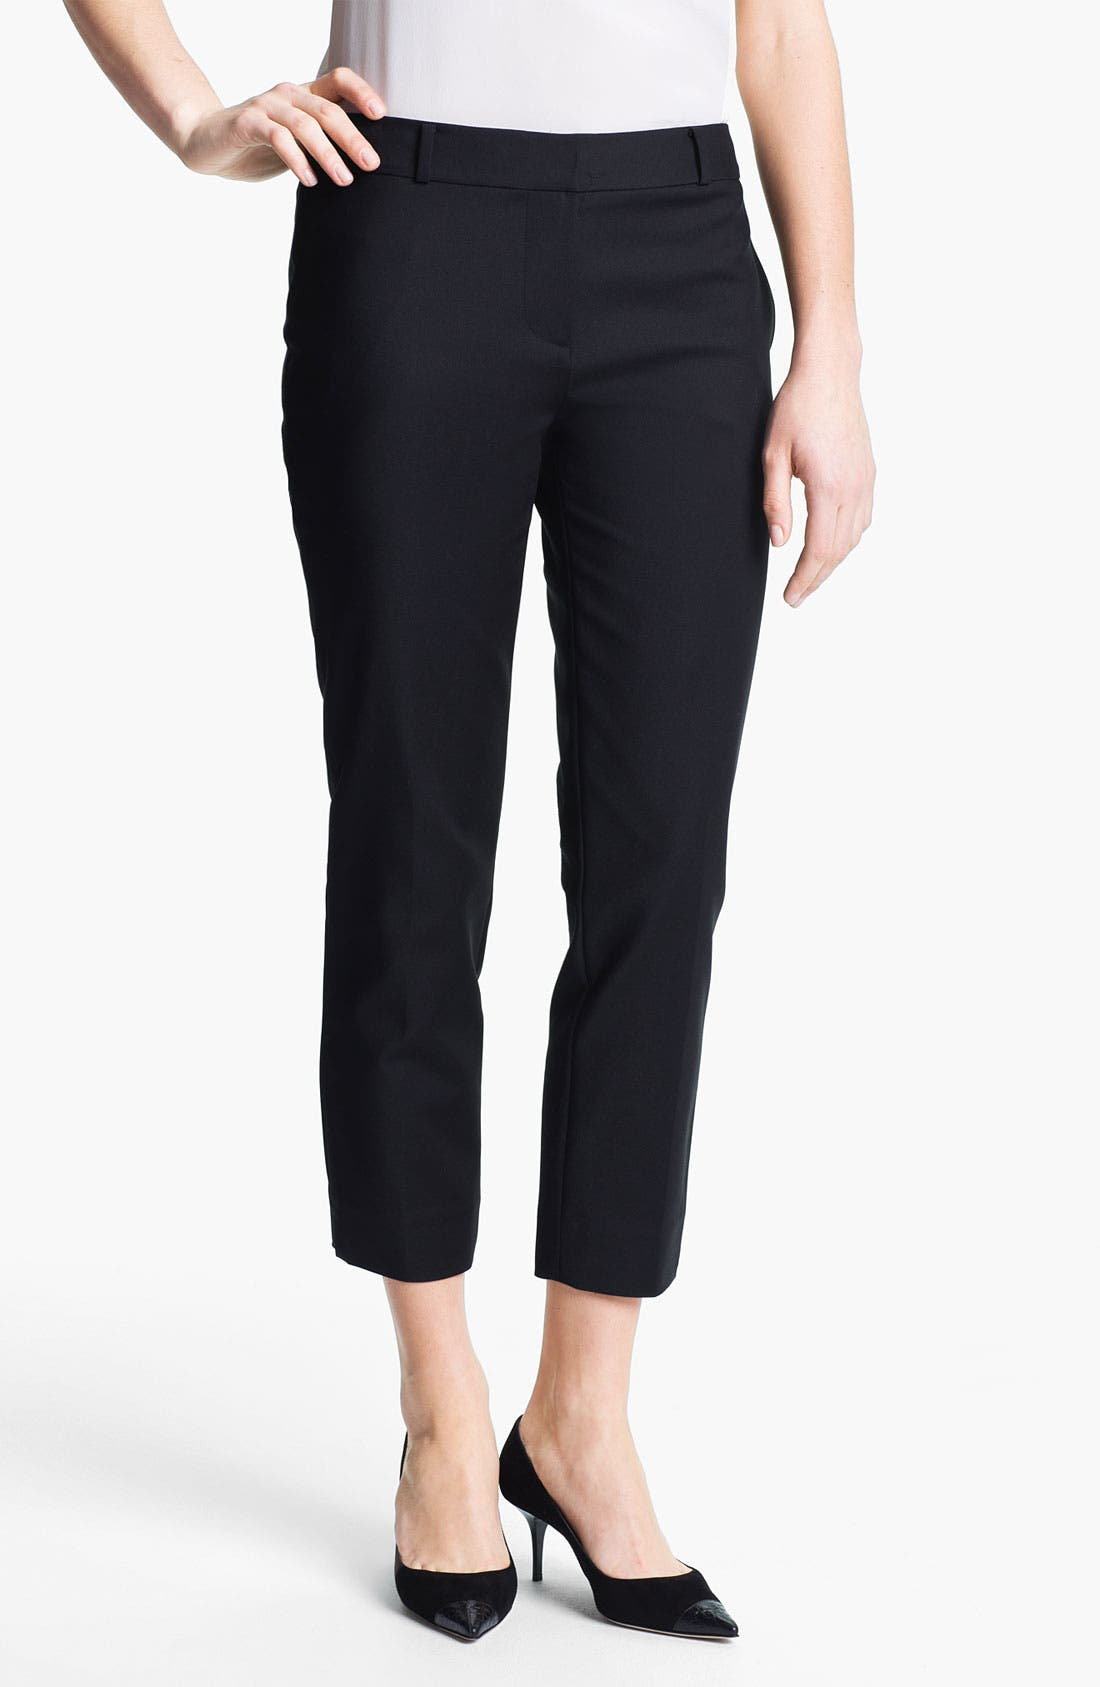 Main Image - kate spade new york 'davis' capri pants